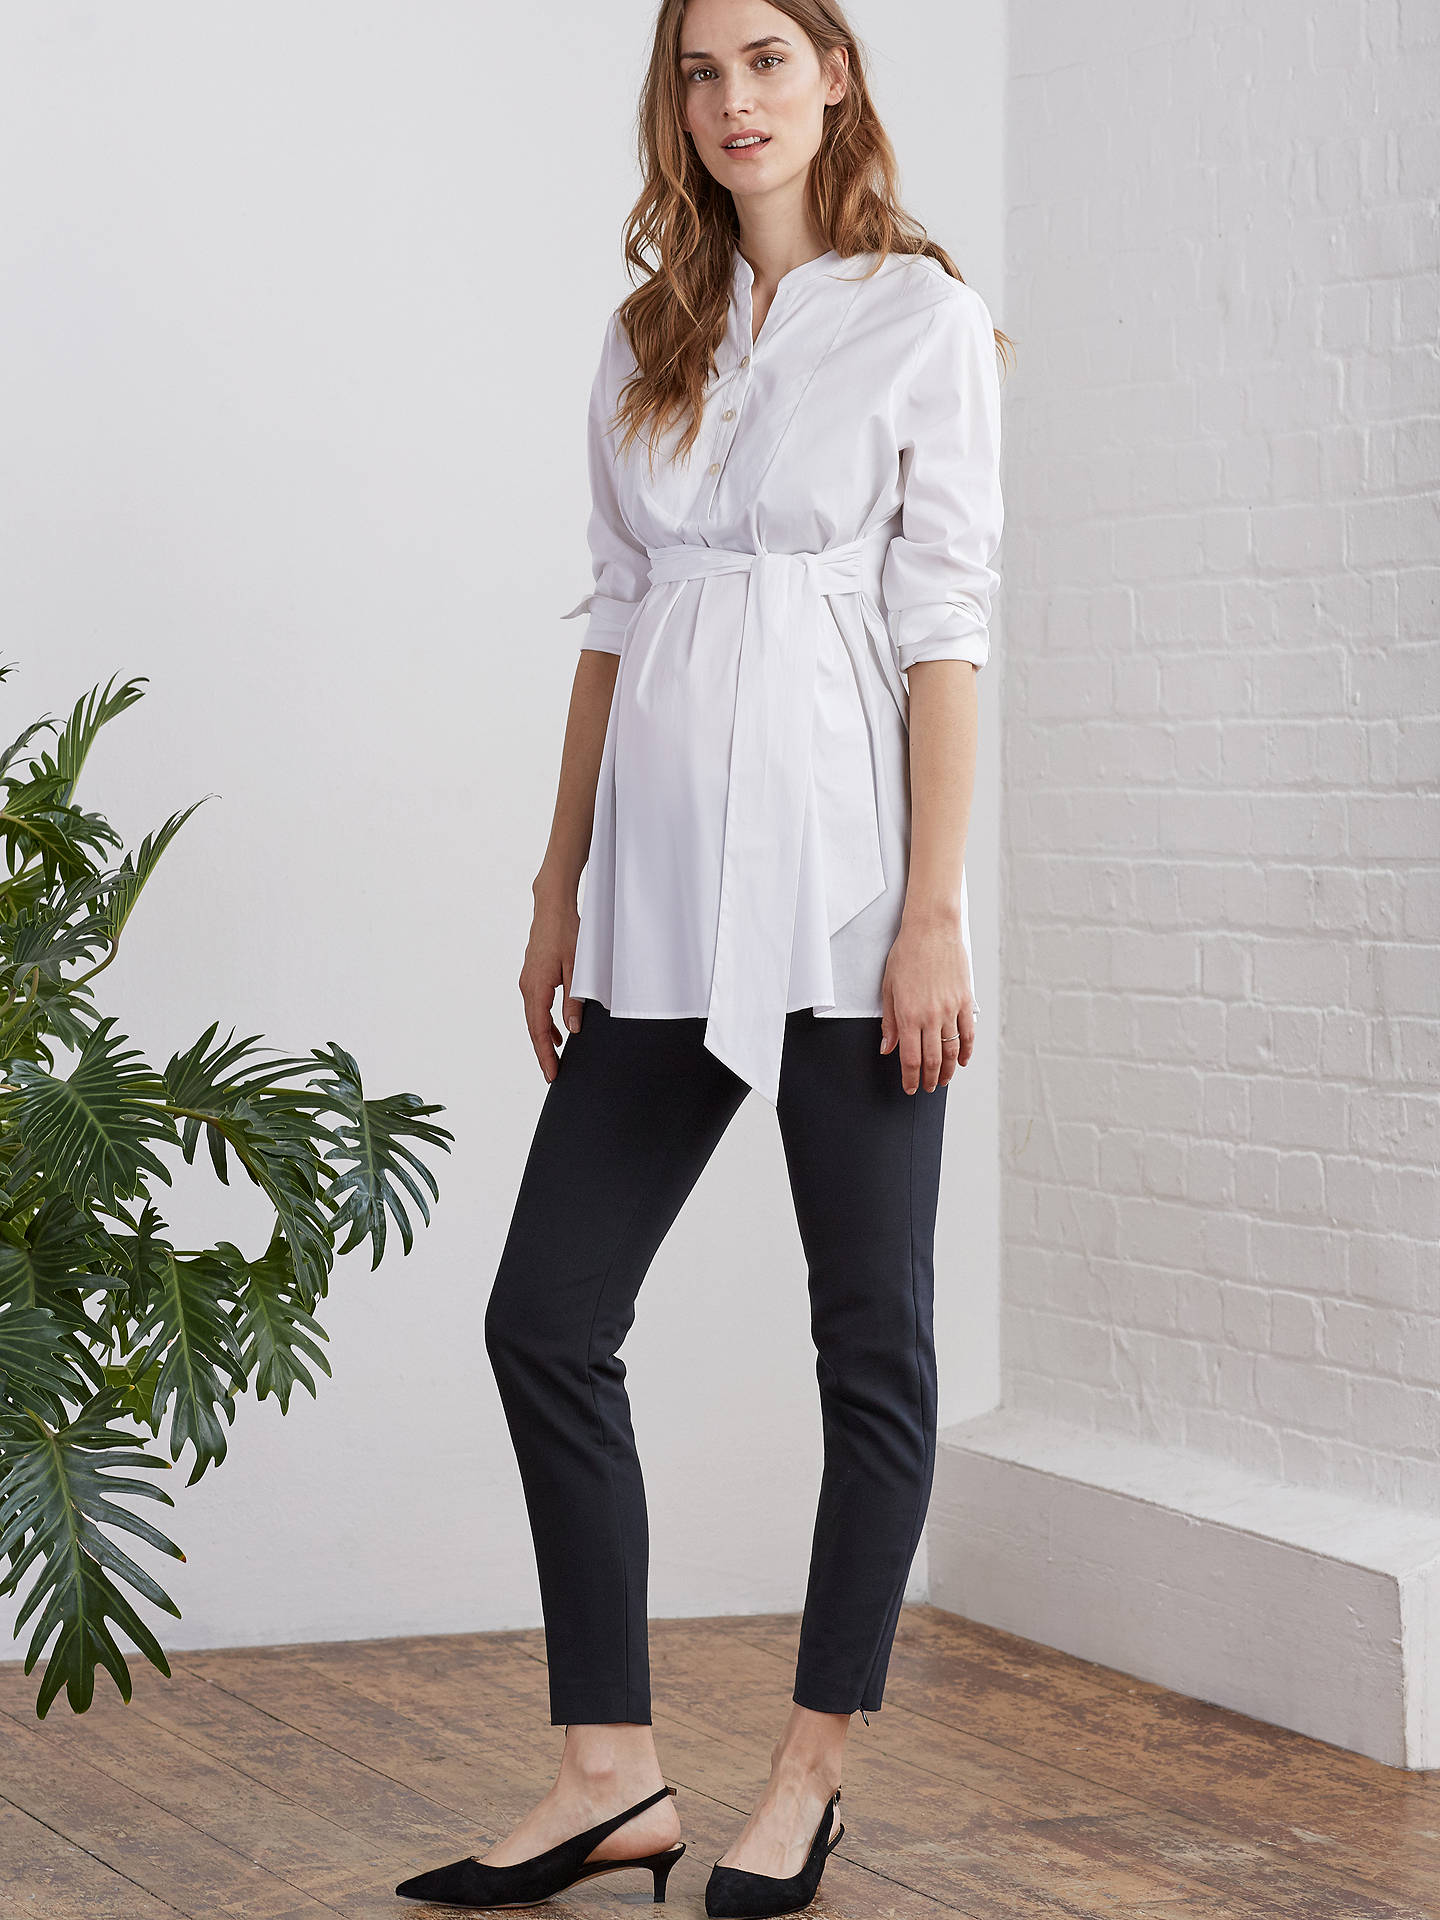 BuyIsabella Oliver Granville Maternity Shirt, Pure White, 8 Online at johnlewis.com